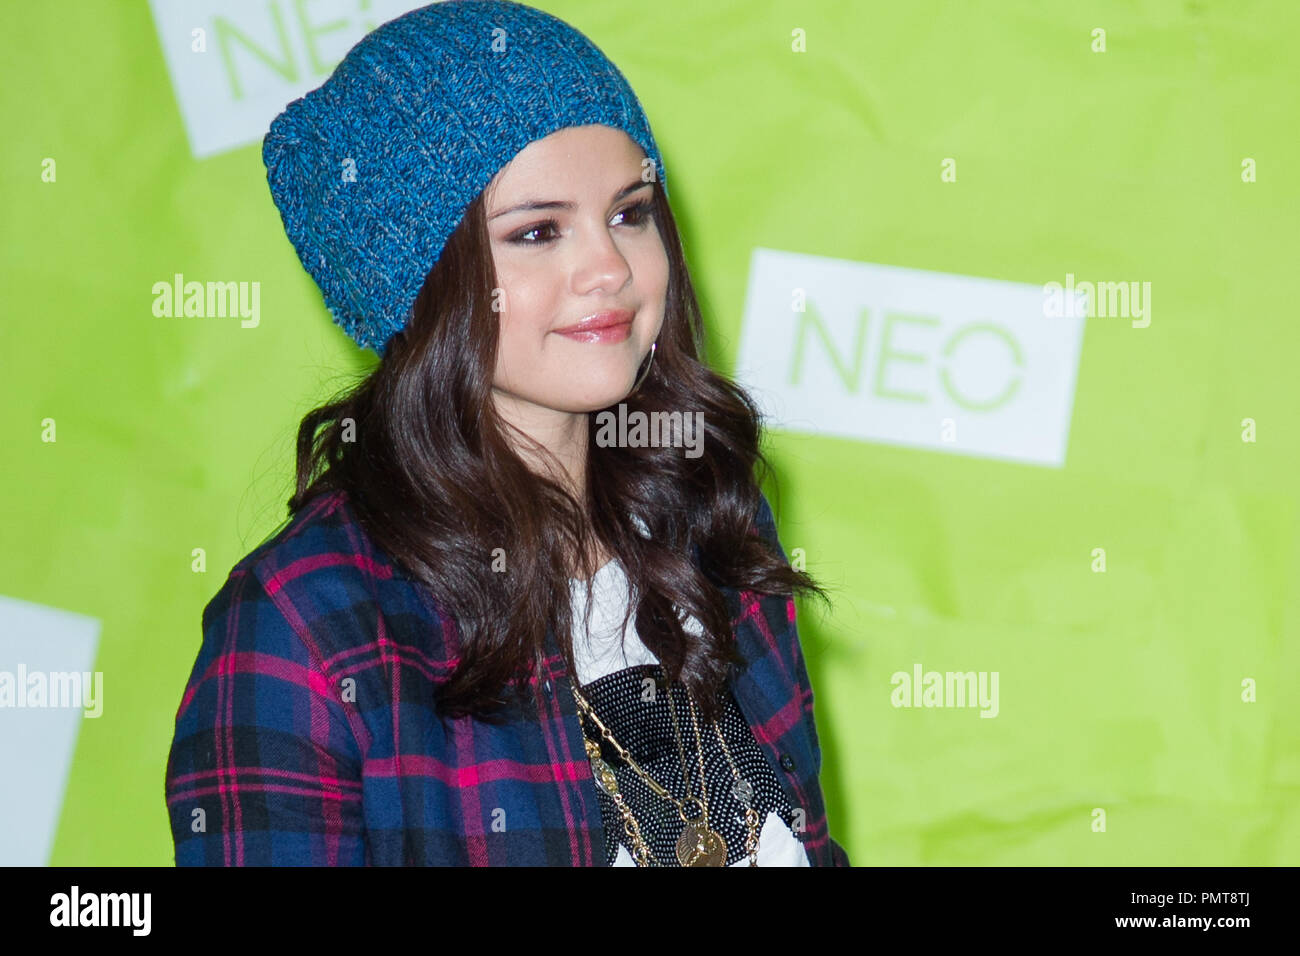 Selena Gomez attends the launch for the Adidas NEO clothing